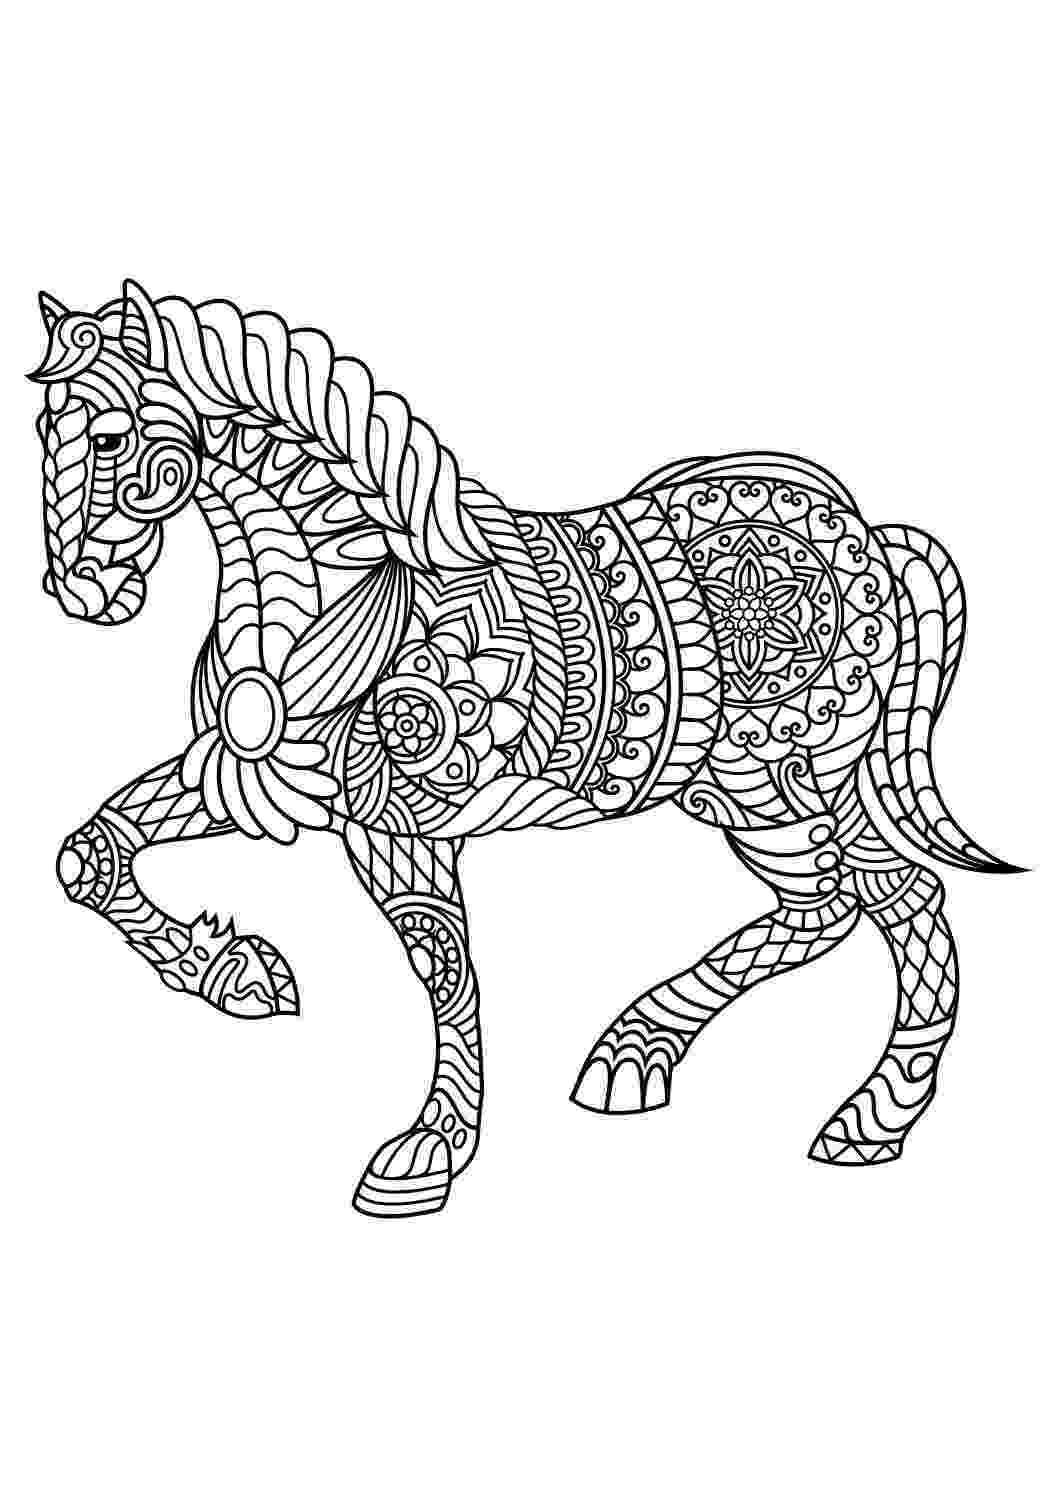 coloring pages animals animal coloring pages pdf horse coloring pages mandala animals coloring pages